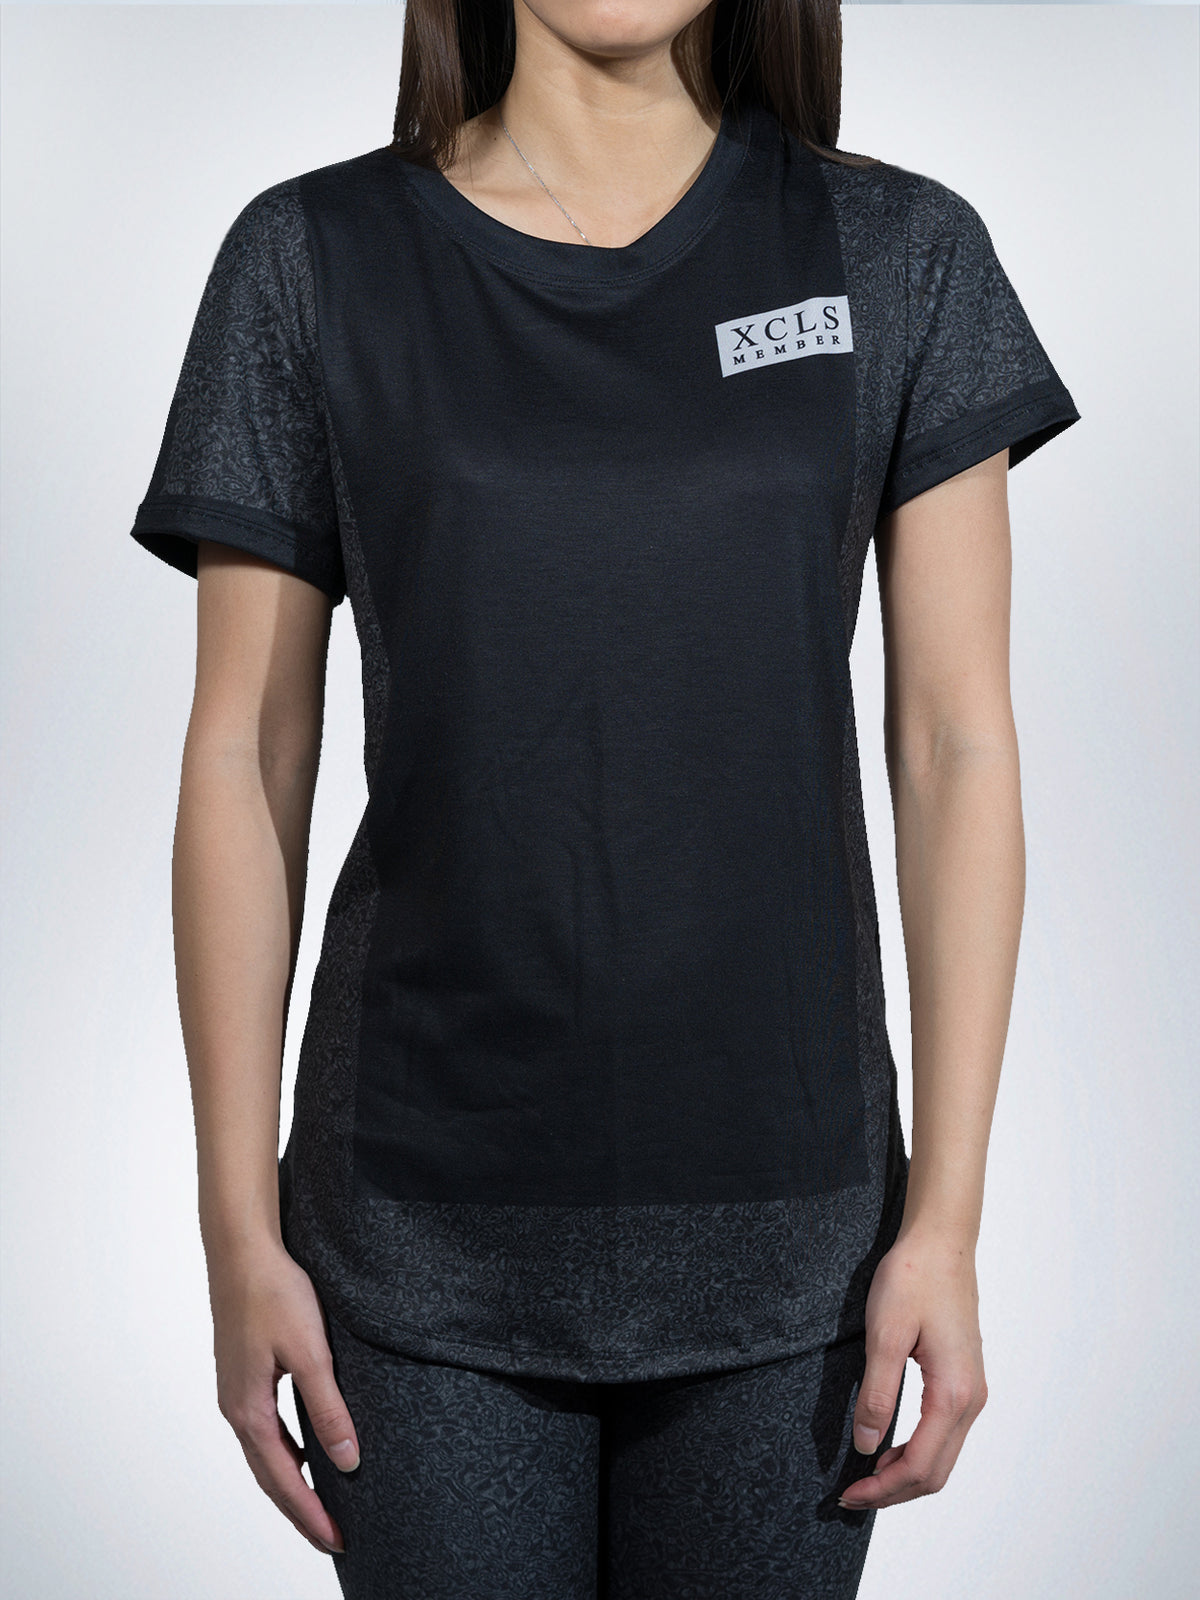 Statics Xclusive Women Tees shirts tops retro black urban